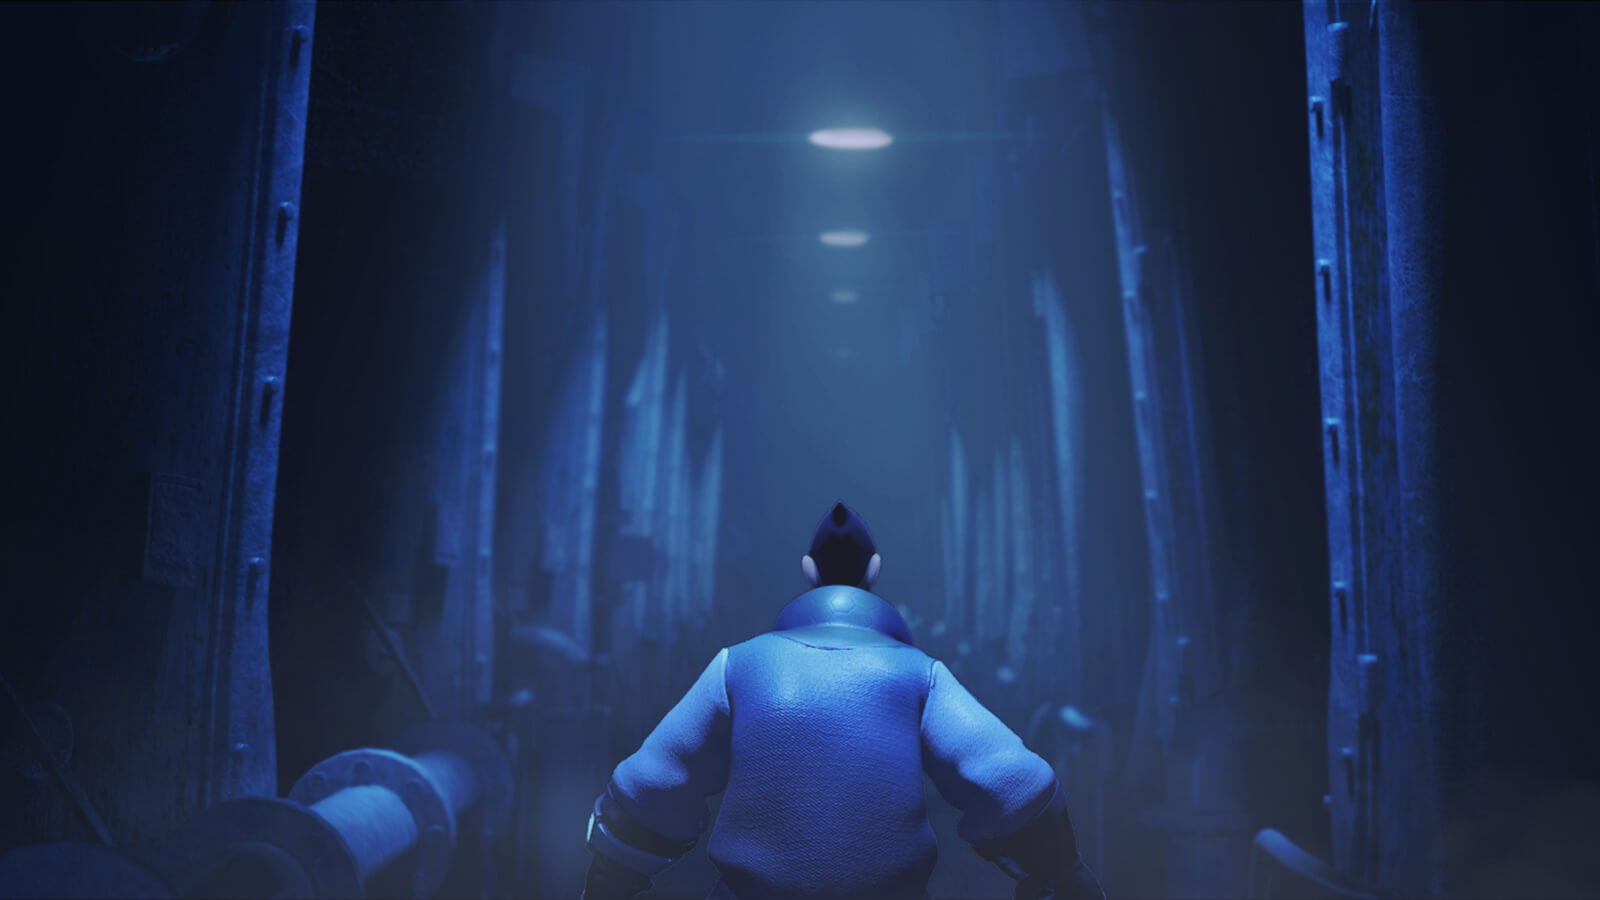 Seen from behind, a man in blue attire walks down an industrial corridor dimly lit from above